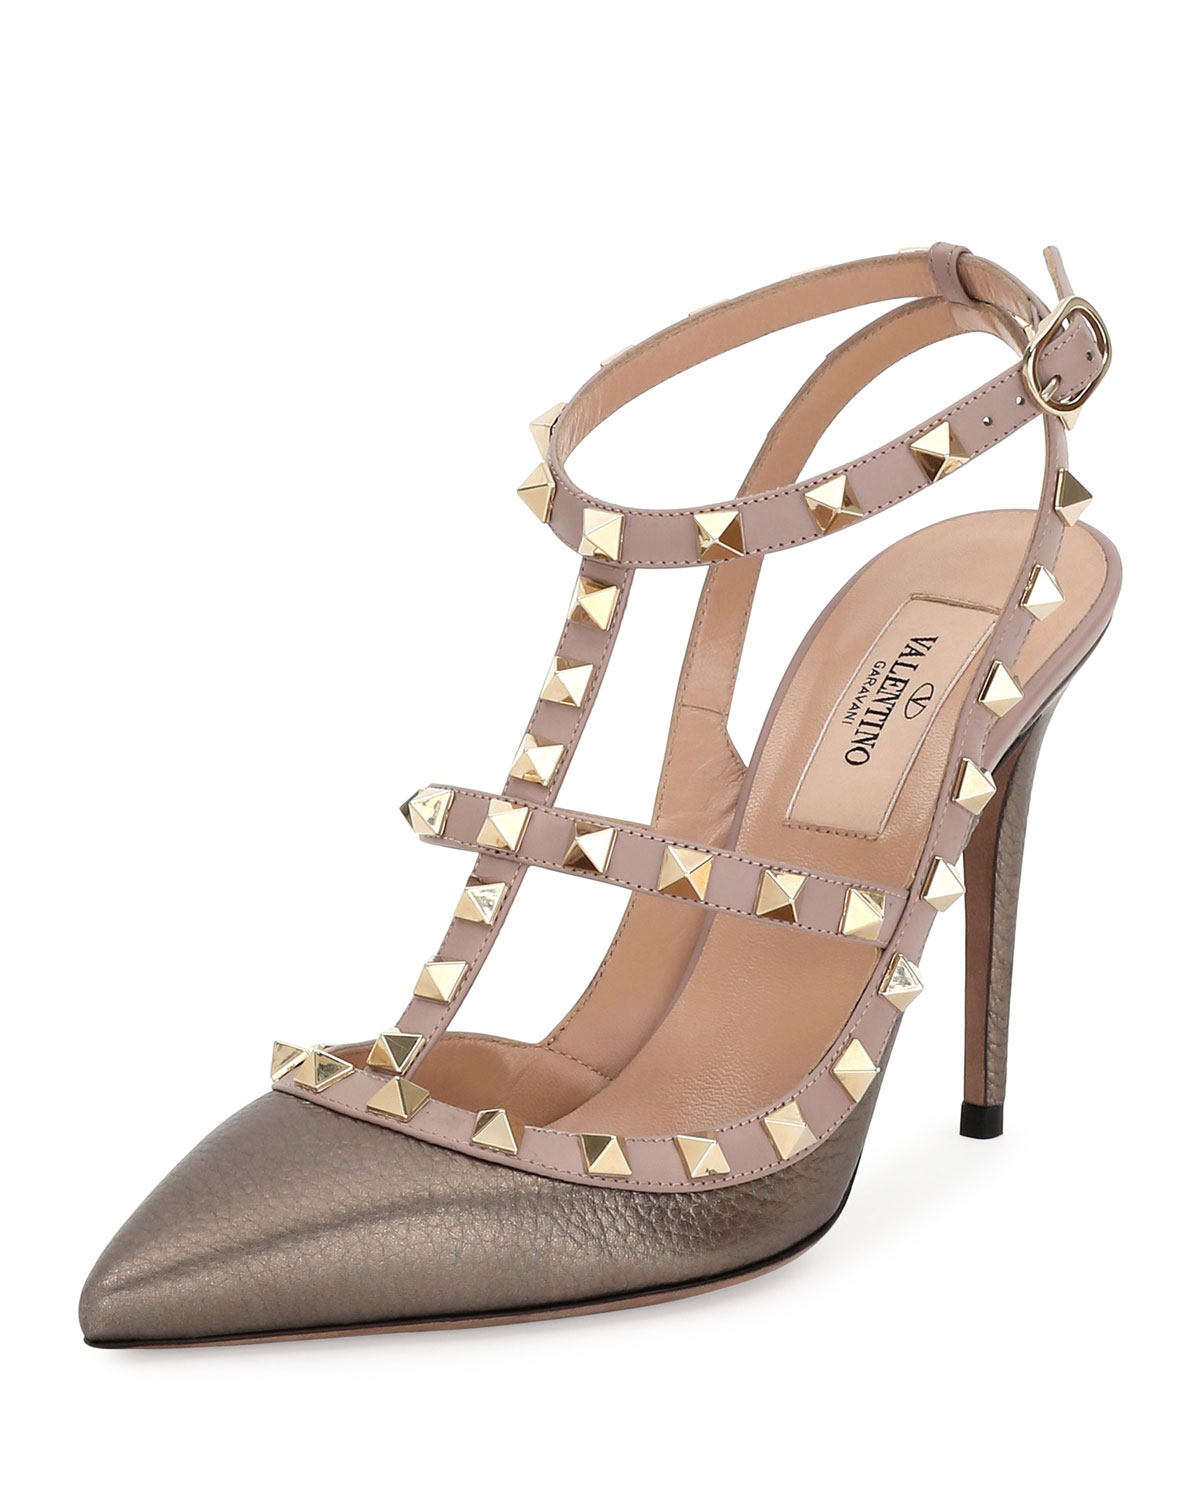 Valentino Rockstud Leather 100mm Pump in Multicolor | Lyst